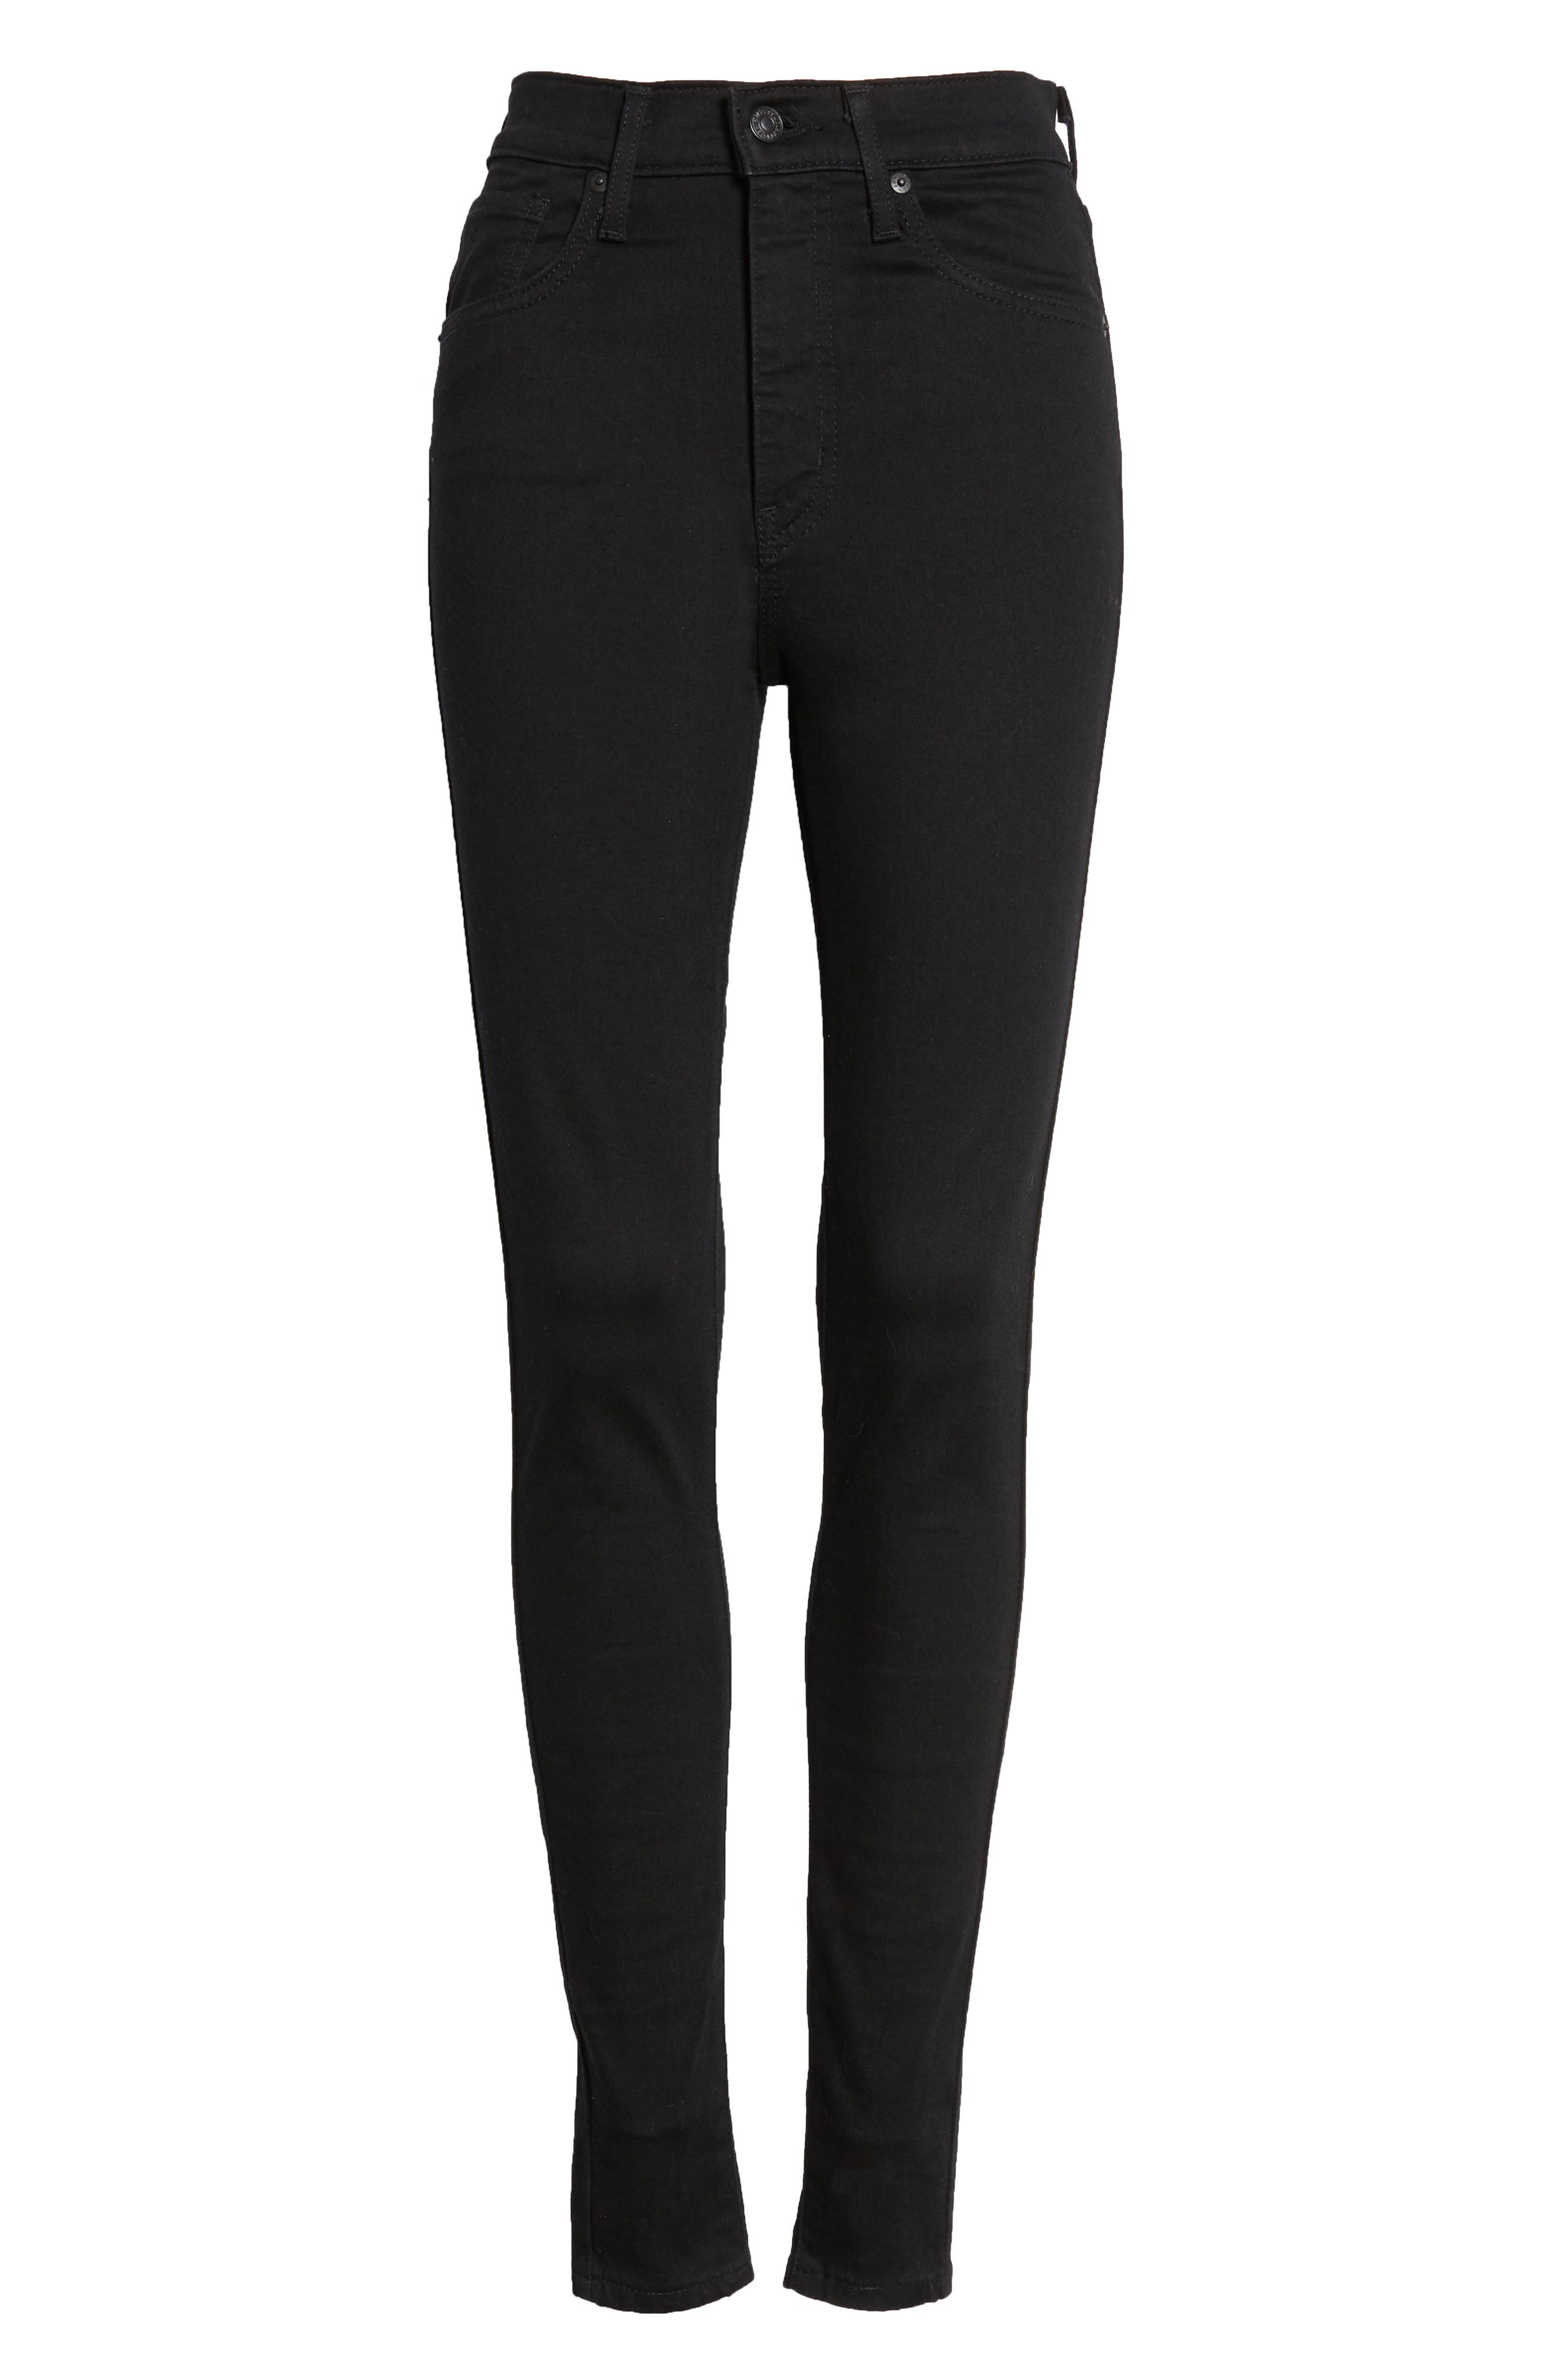 LEVI'S<SUP>®</SUP>, Mile High Super Skinny Jeans, Alternate thumbnail 7, color, BLACK GALAXY